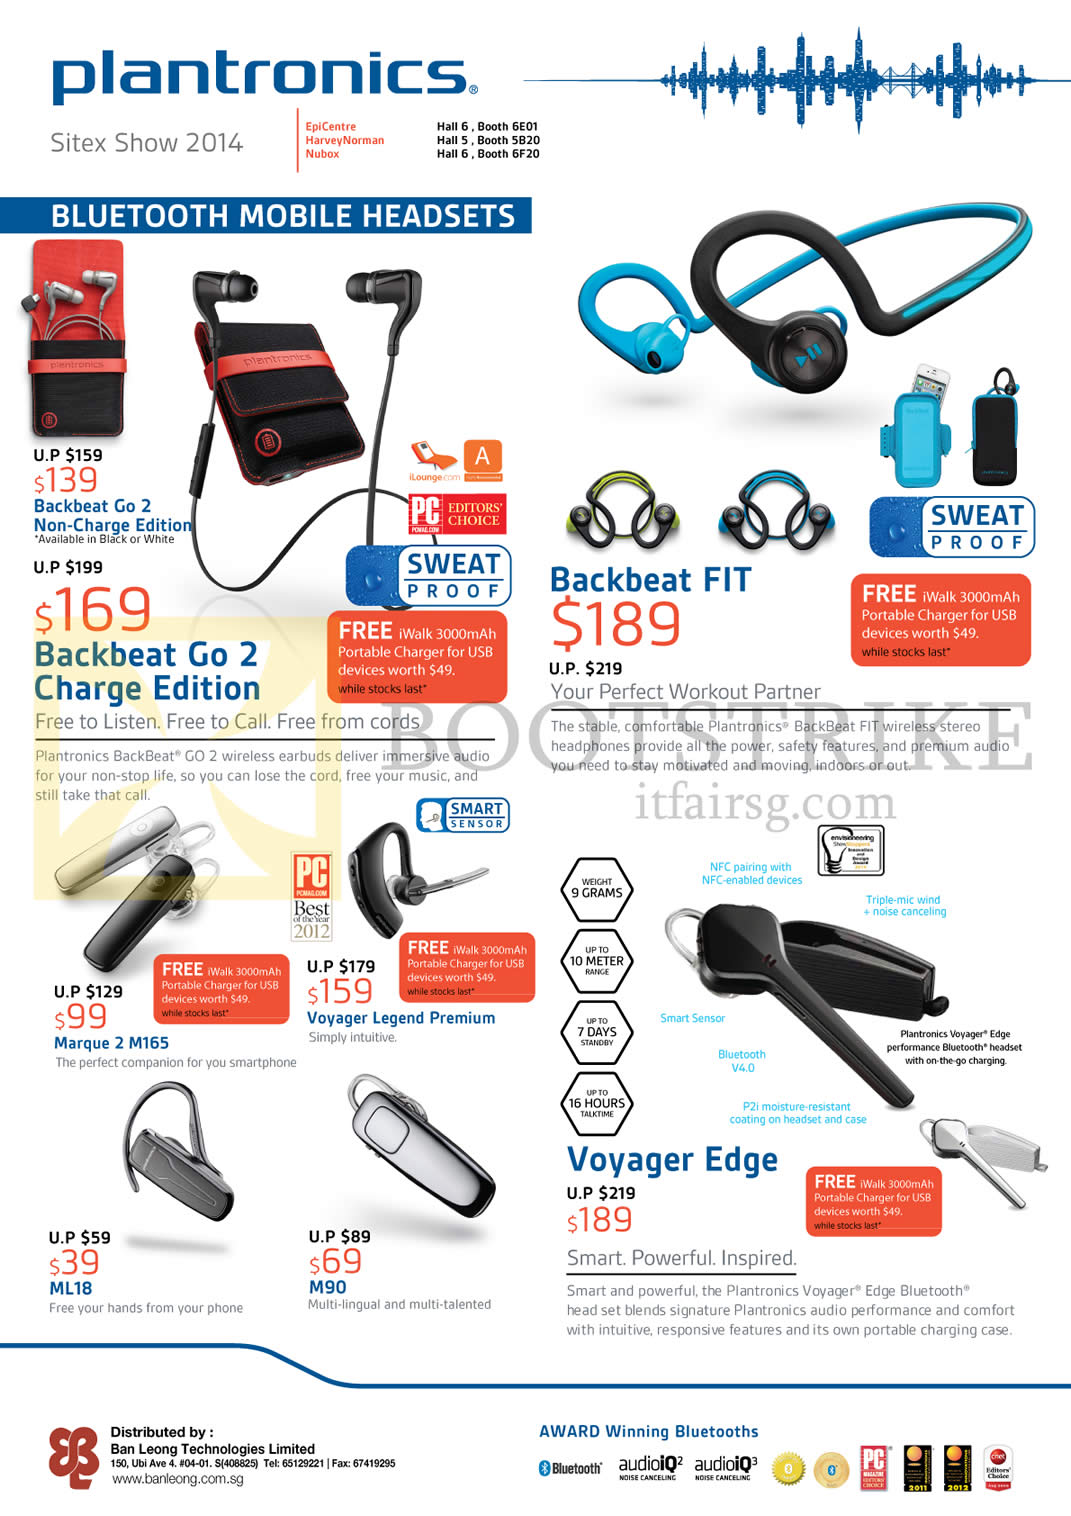 SITEX 2014 price list image brochure of Plantronics Bluetooth Mobile Headsets Backbeat Go 2 Charge, Backbeat Fit, Voyager Edge, Marque 2 M165, ML18, M90, Voyager Legend Premium